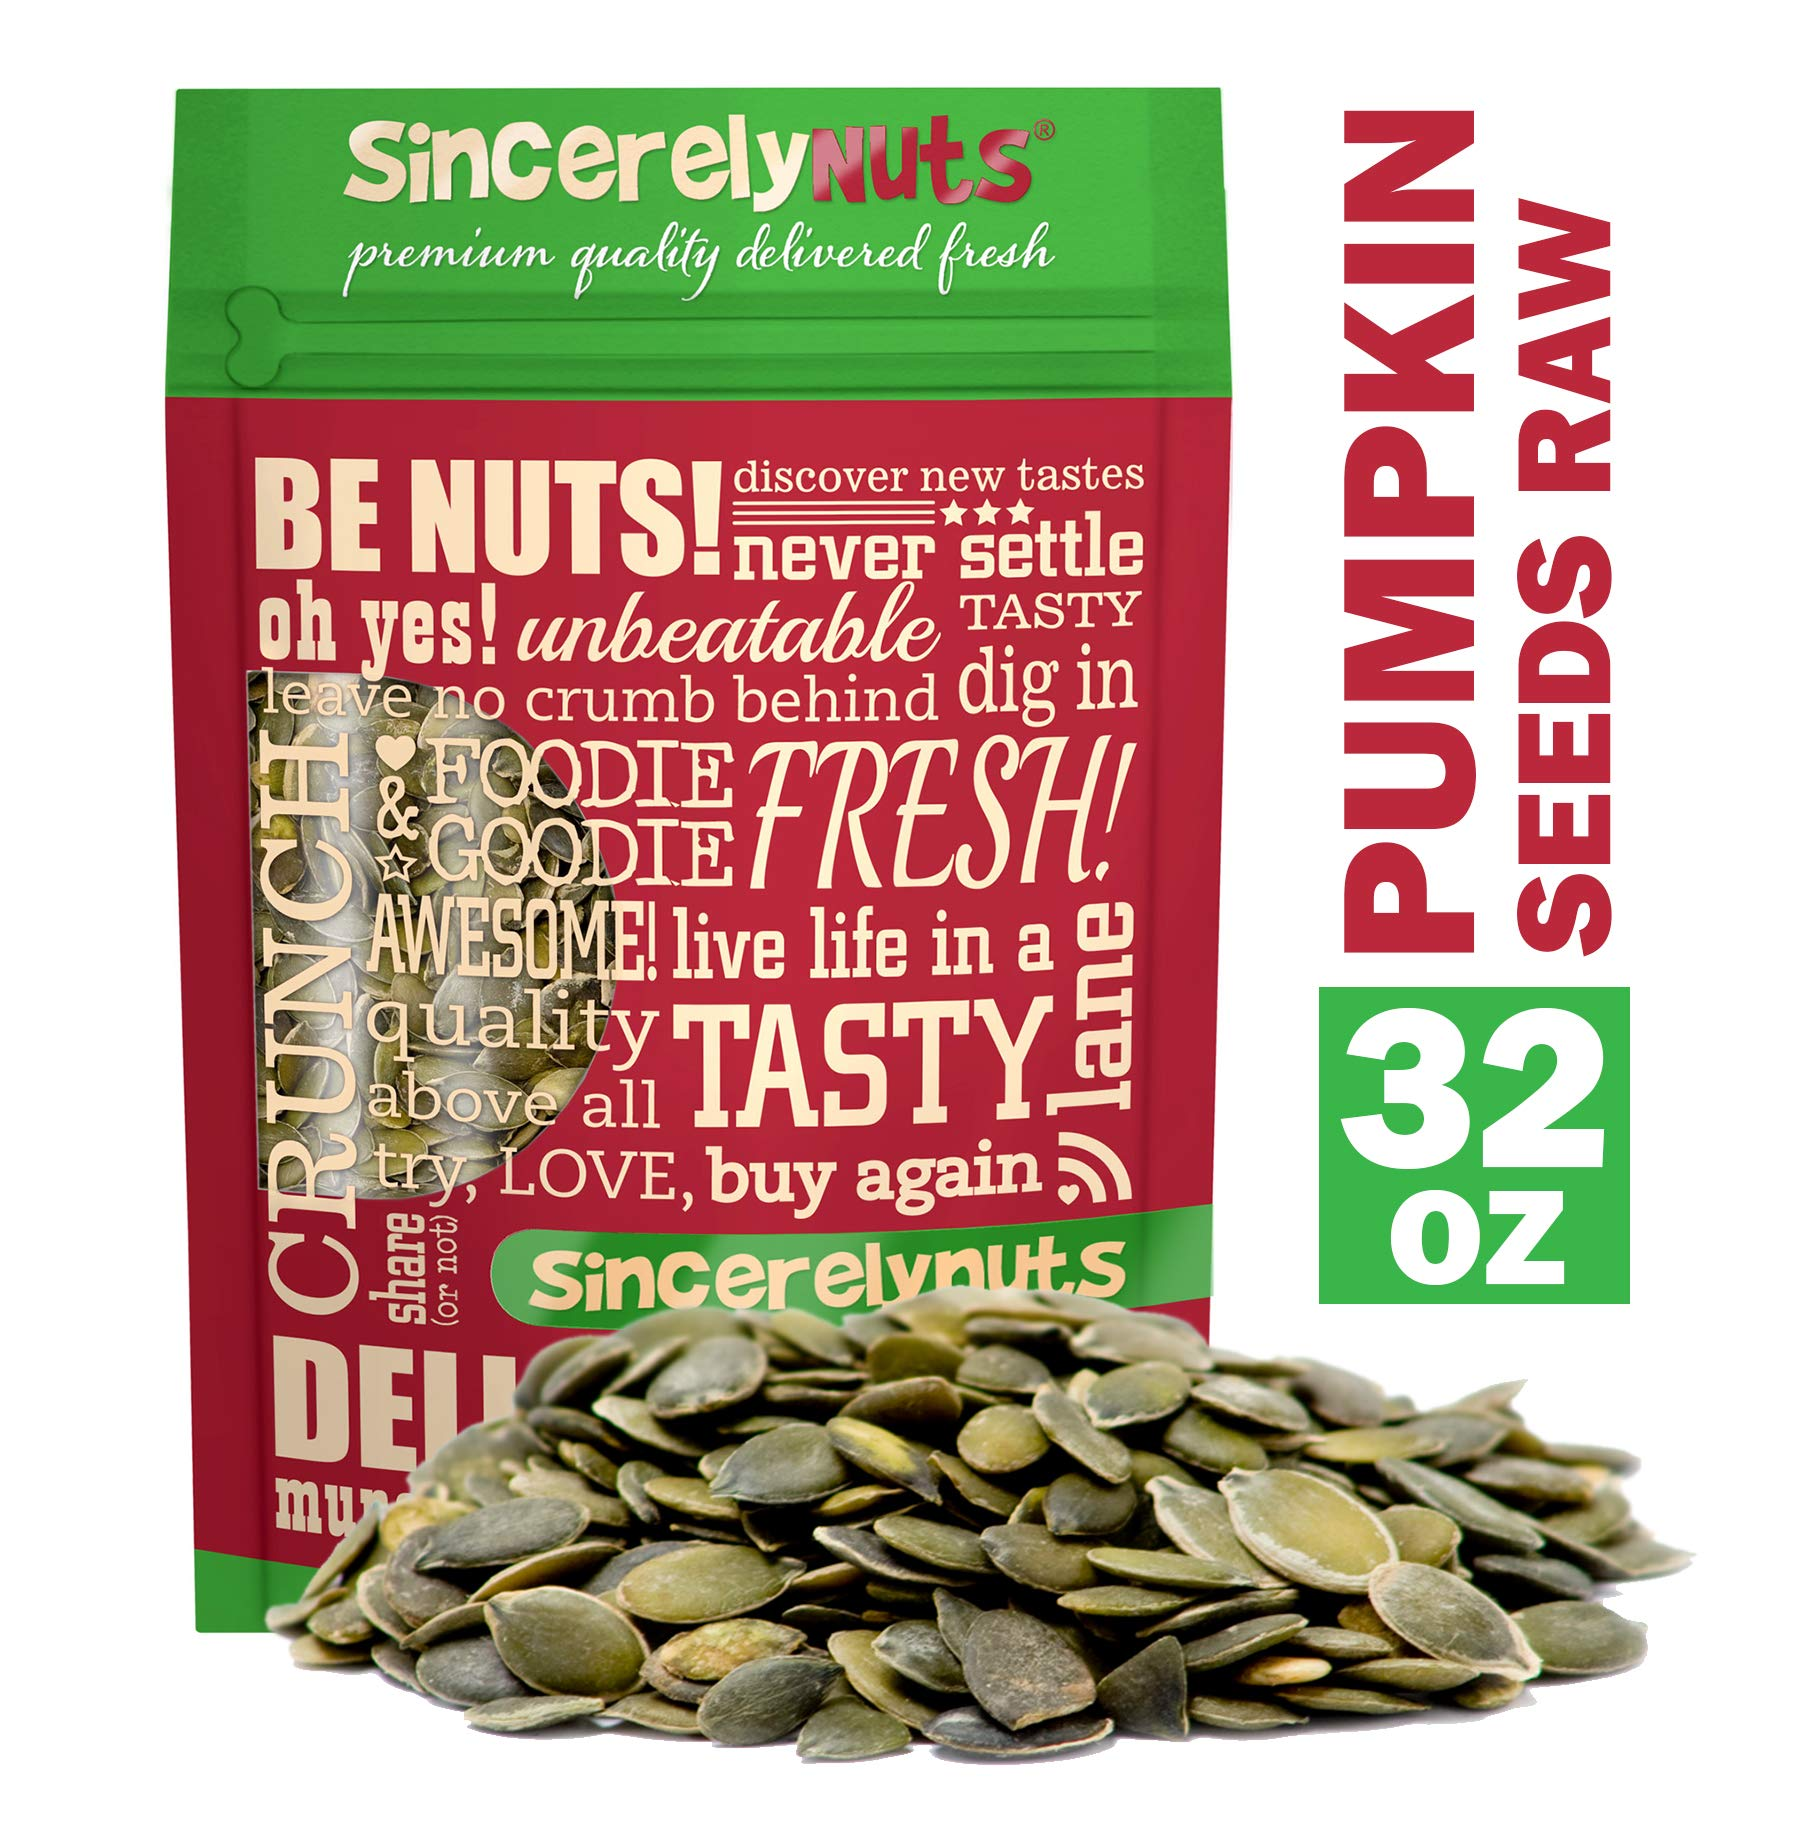 Sincerely Nuts - Raw Shelled Pepitas Pumpkin Seeds (Unsalted) (2lb bag) | All Natural Snack Food for Eating or Cooking | Vegan, Kosher, Gluten Free Food | Protein & Antioxidants